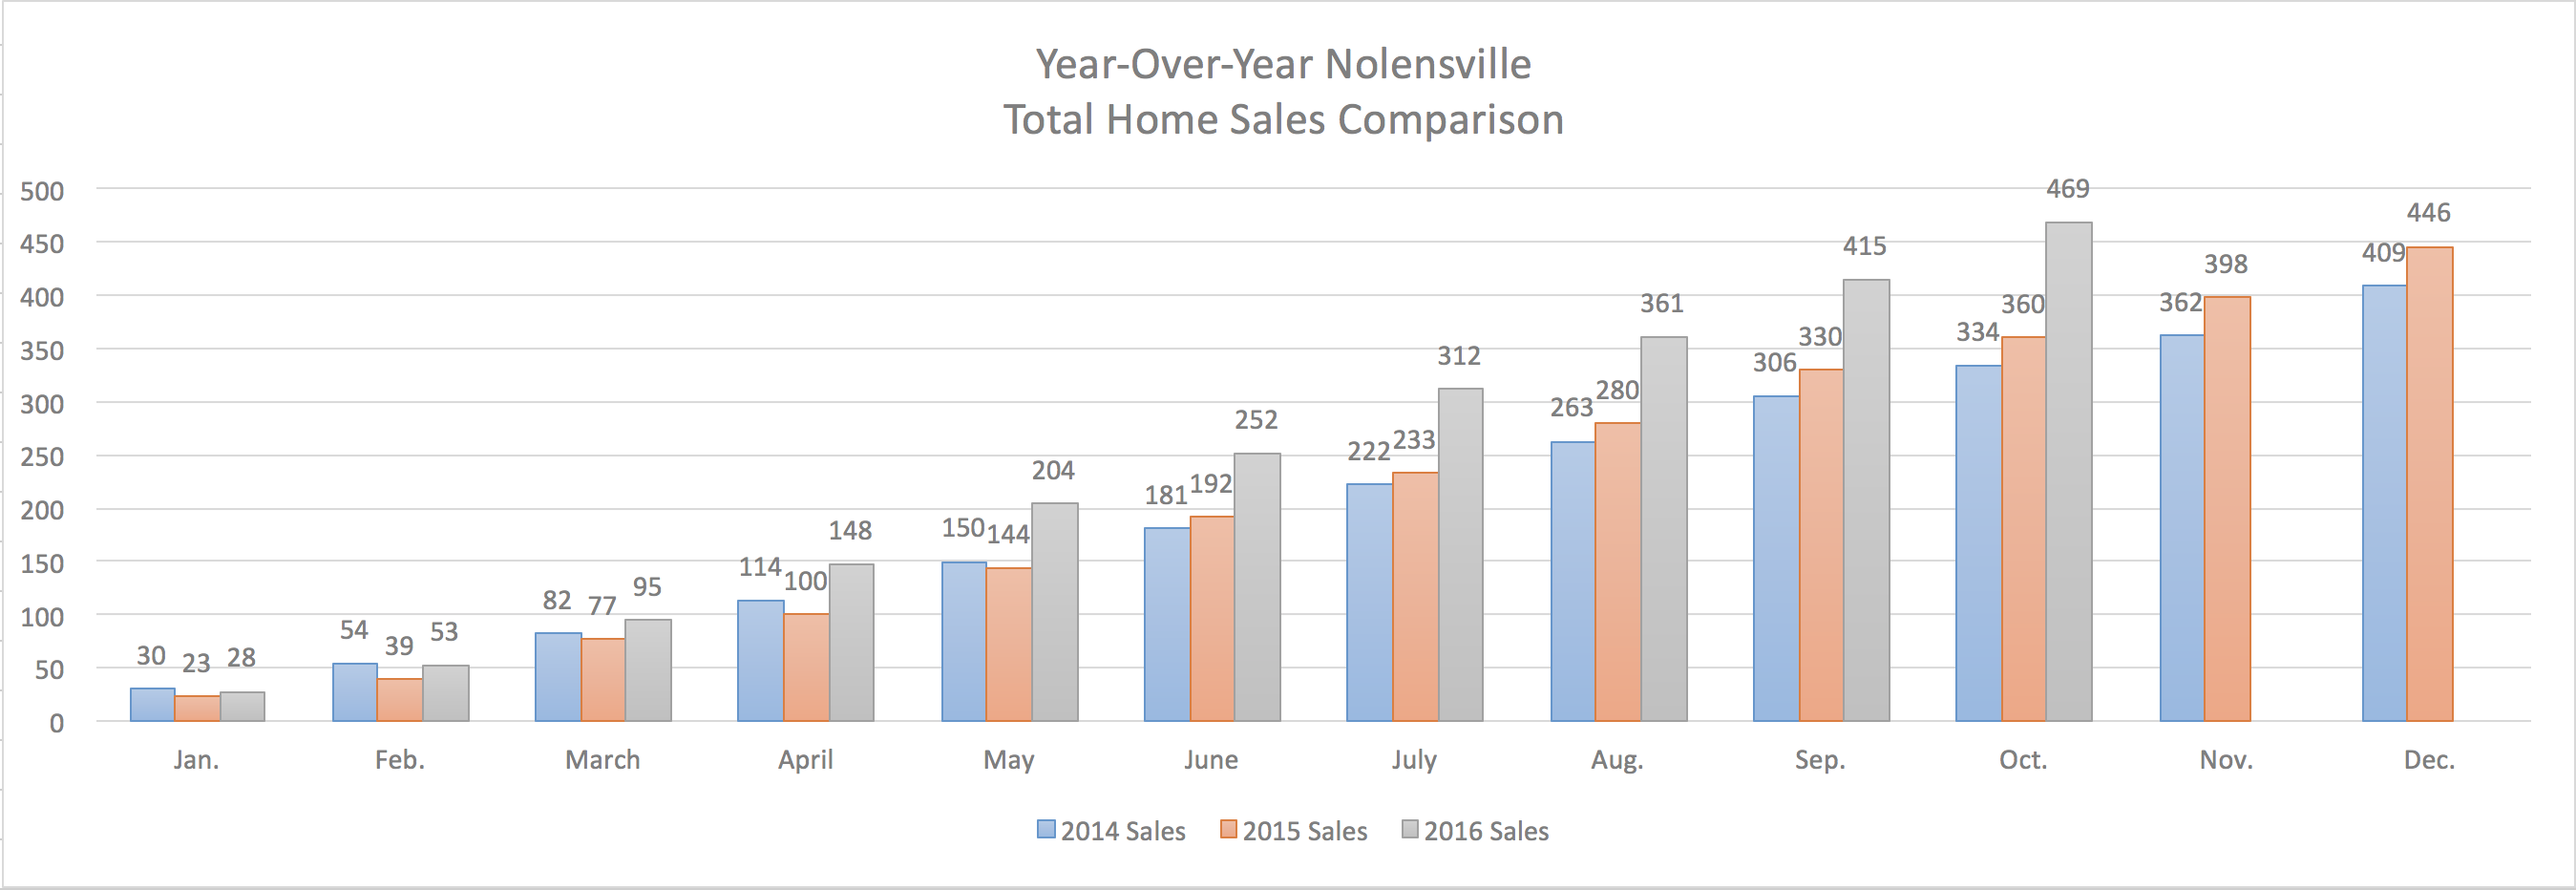 Nolensville Year-Over-Year Home Sales Through October 2016